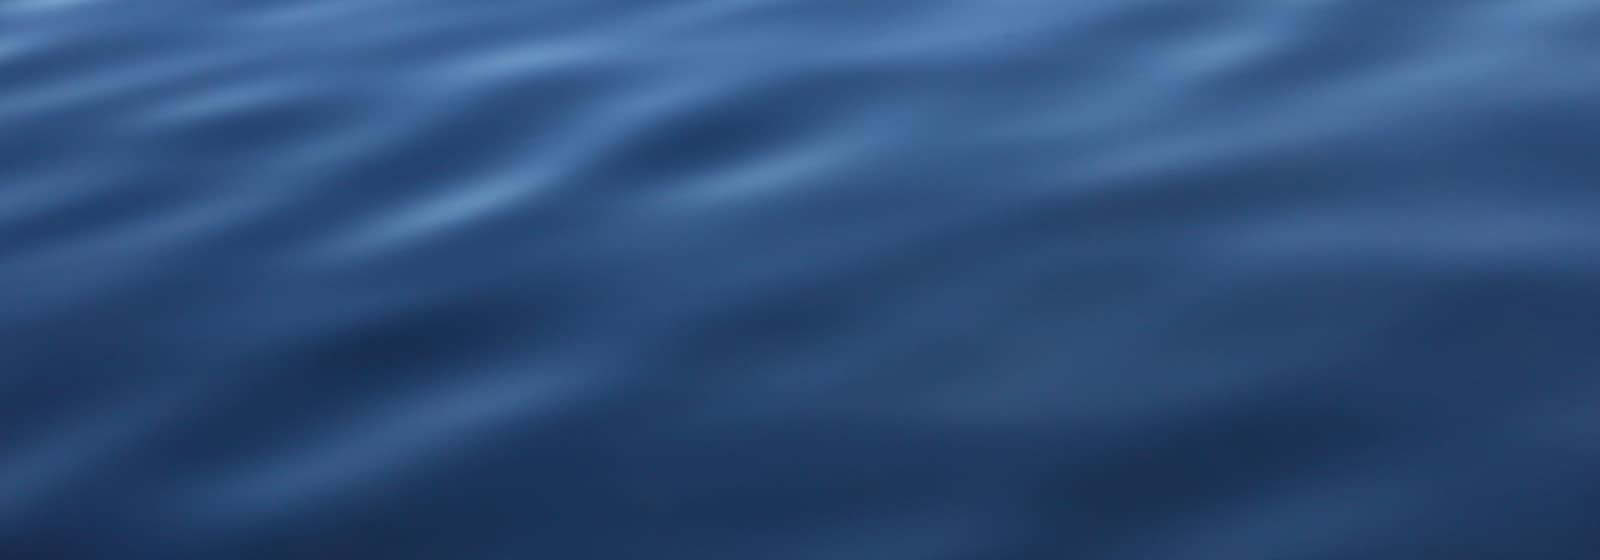 Clean blue water background